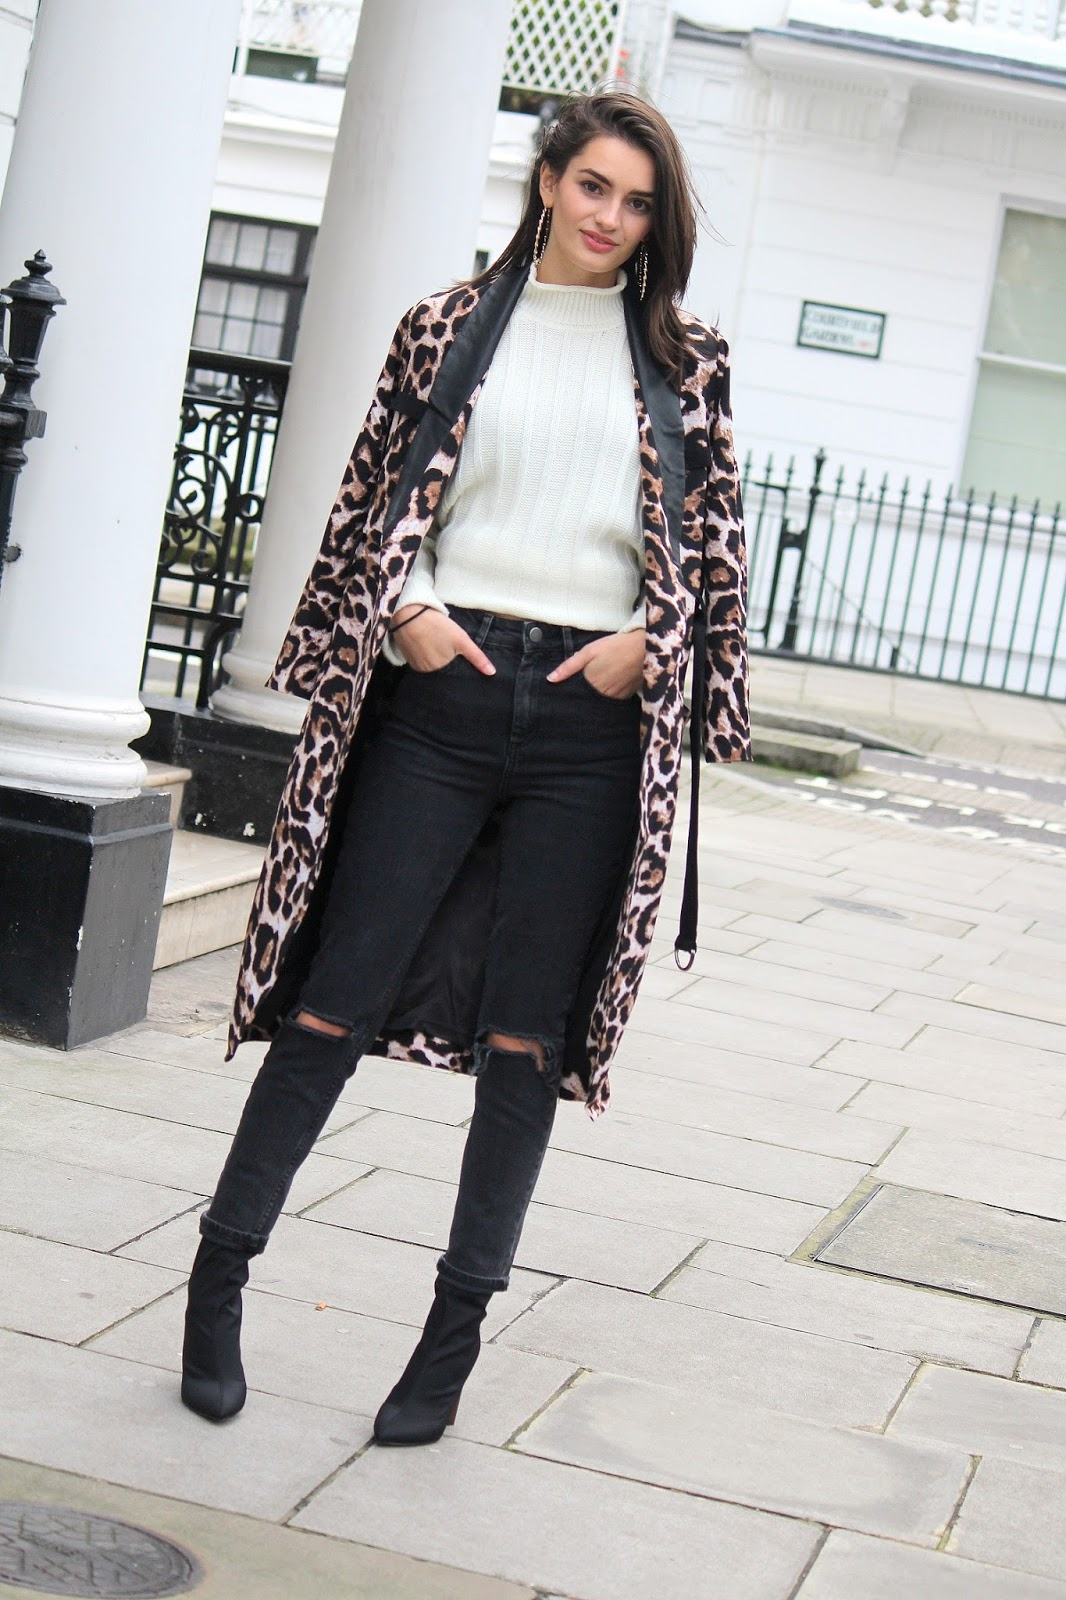 peexo fashion blogger wearing leopard print coat and ripped jeans